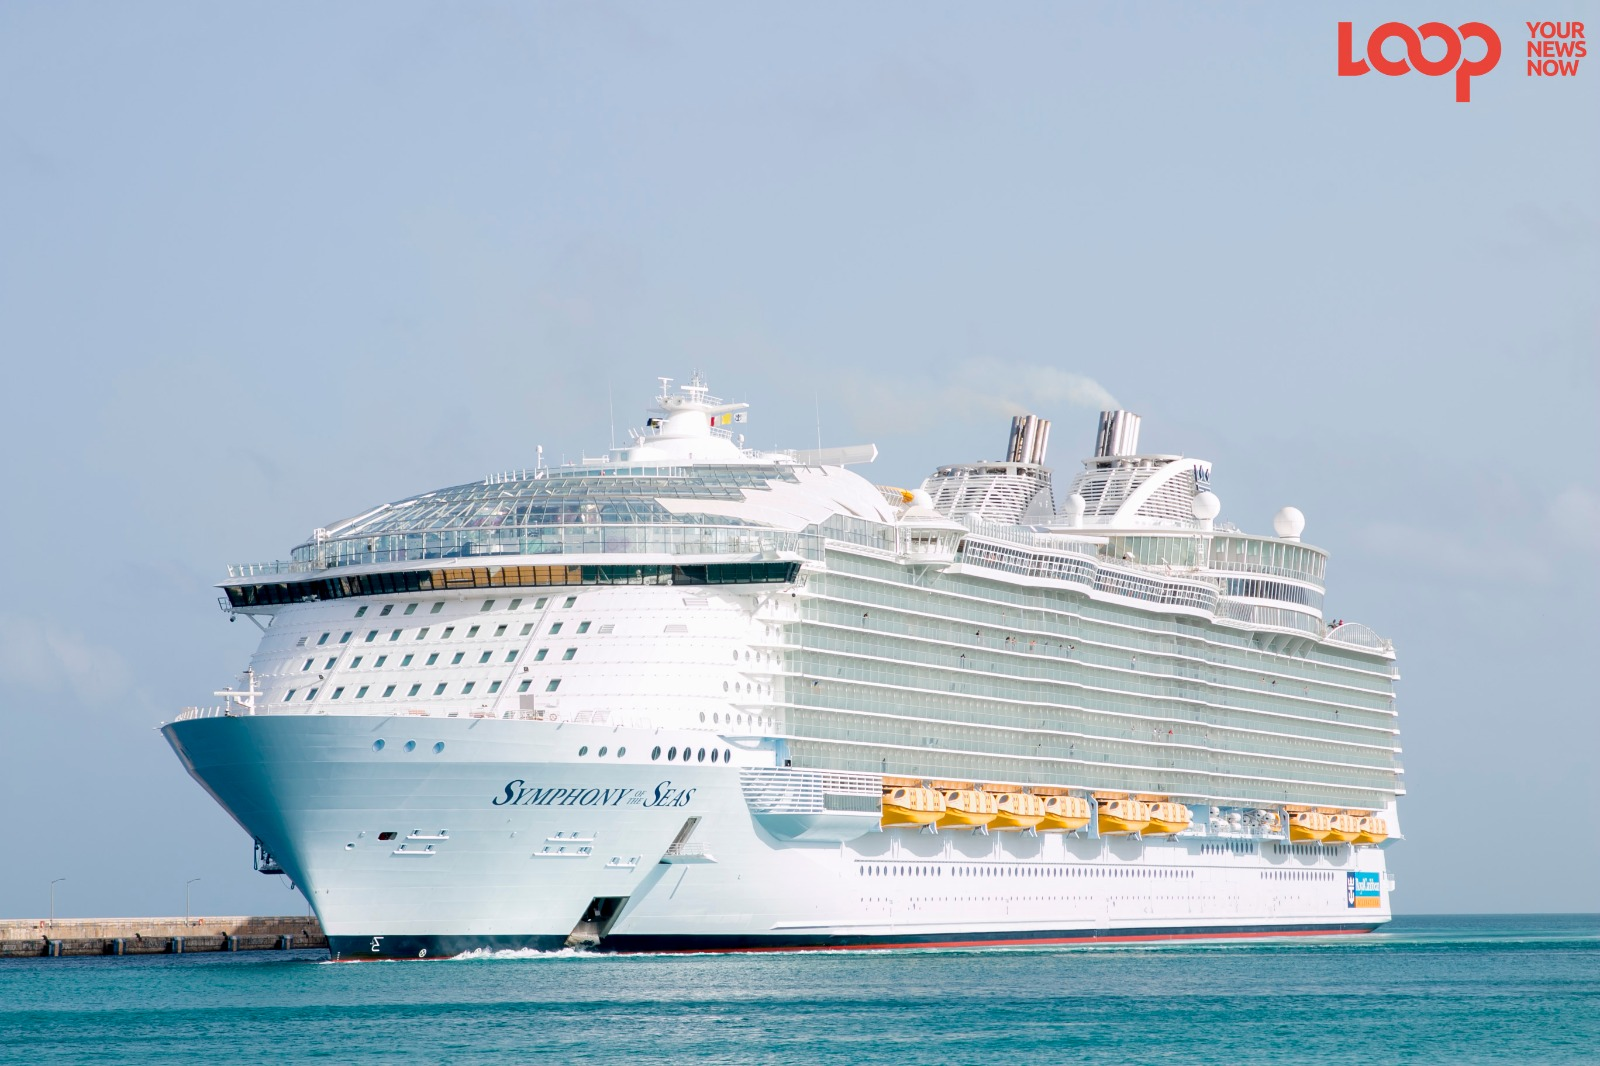 Symphony of the Seas birthed at the Bridgetown Port during the No-Sail period due to COVID-19. (FILE)